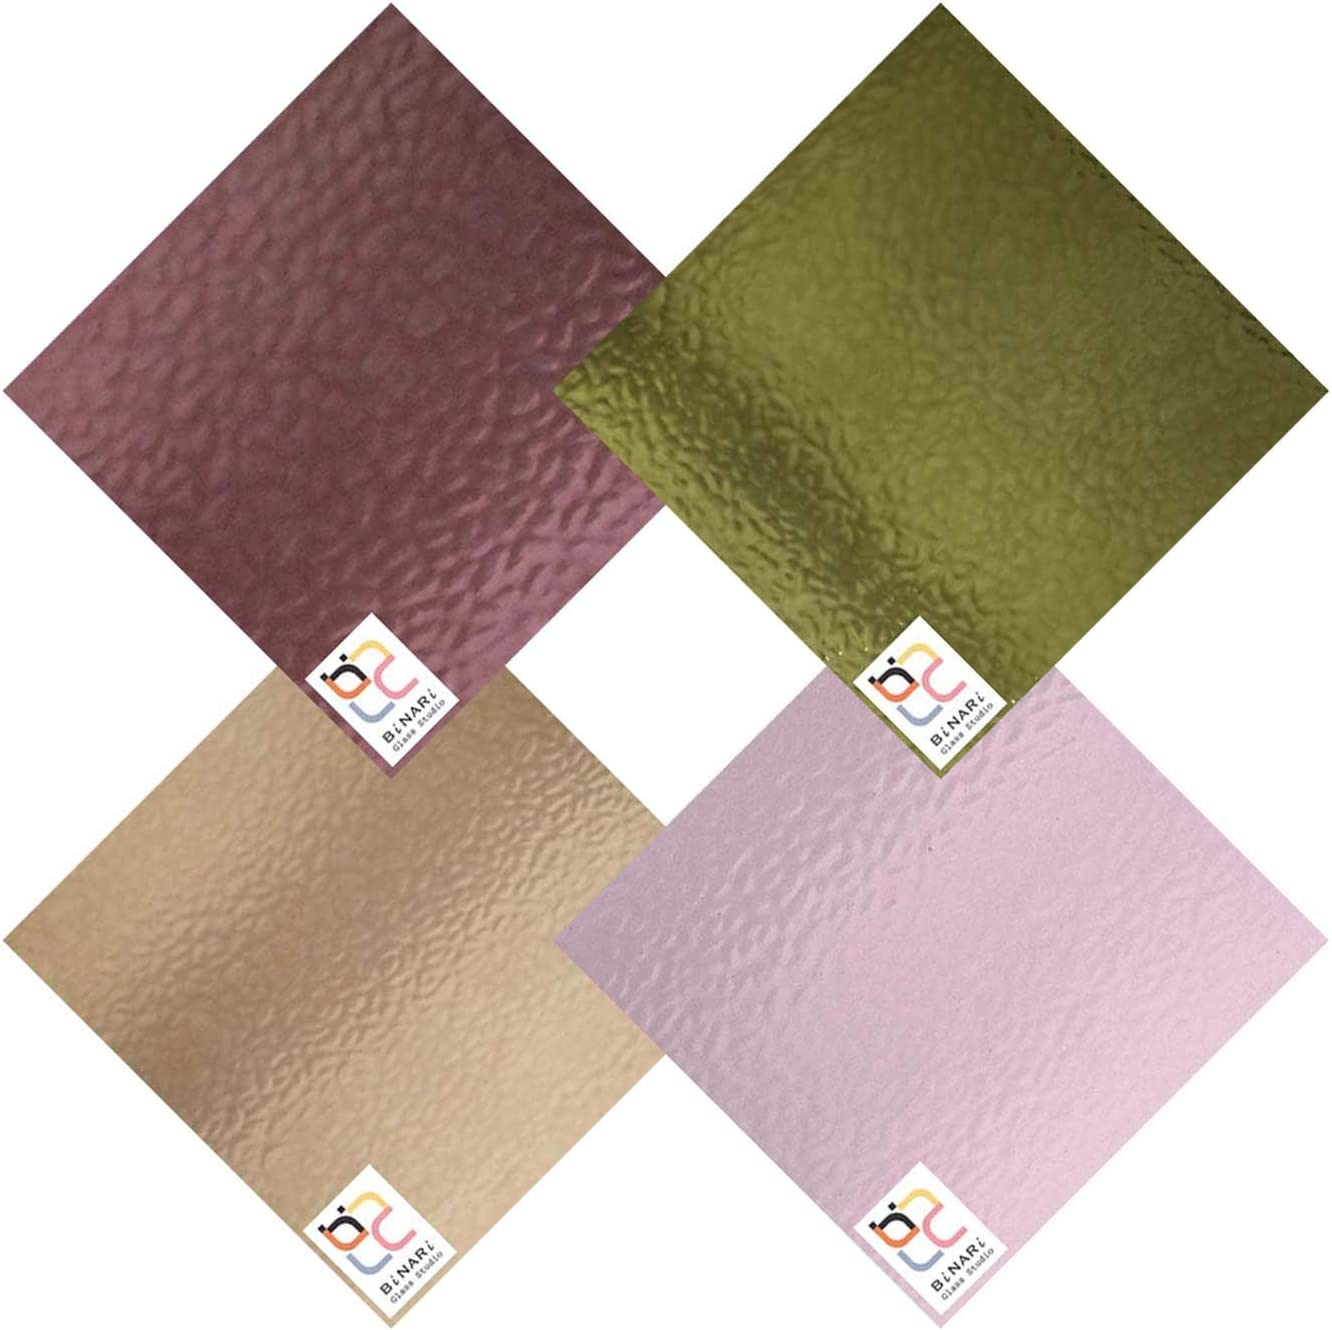 Wissmach 4 Sheet Mixed Color Very Max 49% OFF popular 8